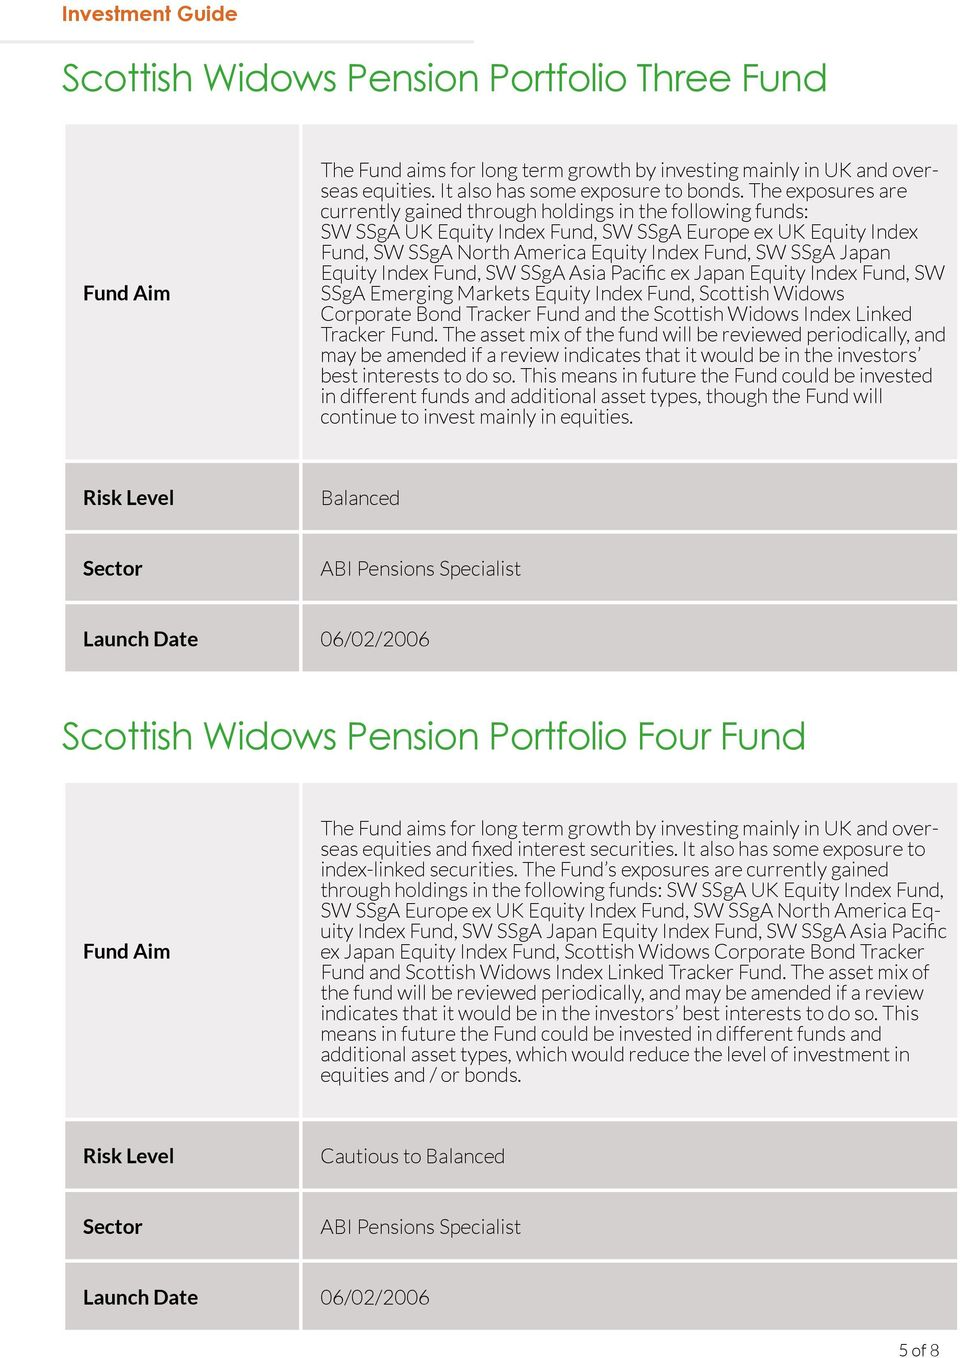 Japan Equity Index Fund, SW SSgA Asia Pacific ex Japan Equity Index Fund, SW SSgA Emerging Markets Equity Index Fund, Scottish Widows Corporate Bond Tracker Fund and the Scottish Widows Index Linked